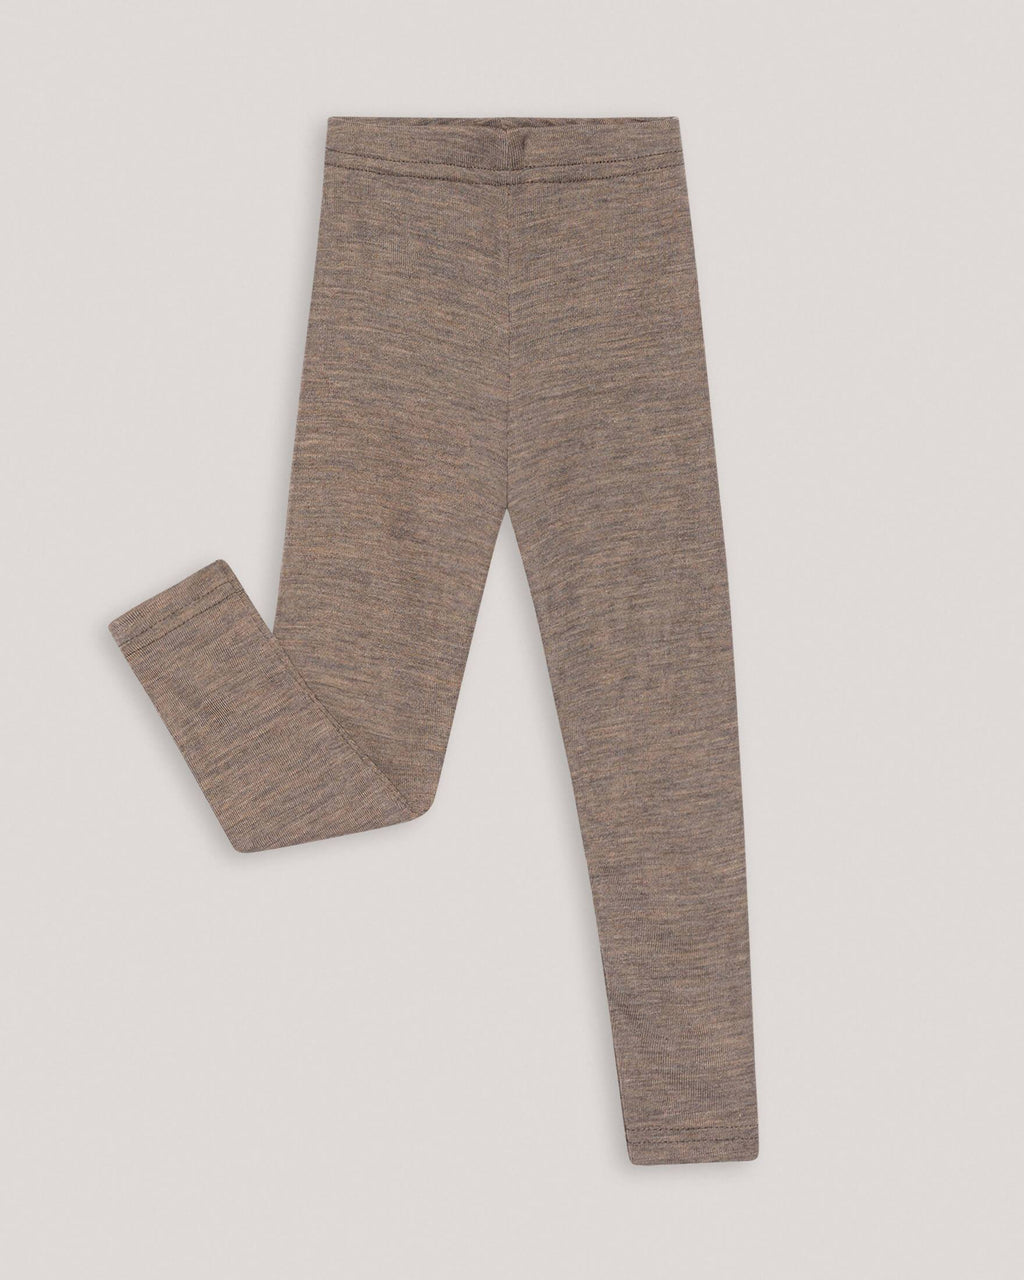 variant_4 | EN Brown Leggings Kids Multicolor ENGEL | DE Braune Leggings Kinder Bunt ENGEL